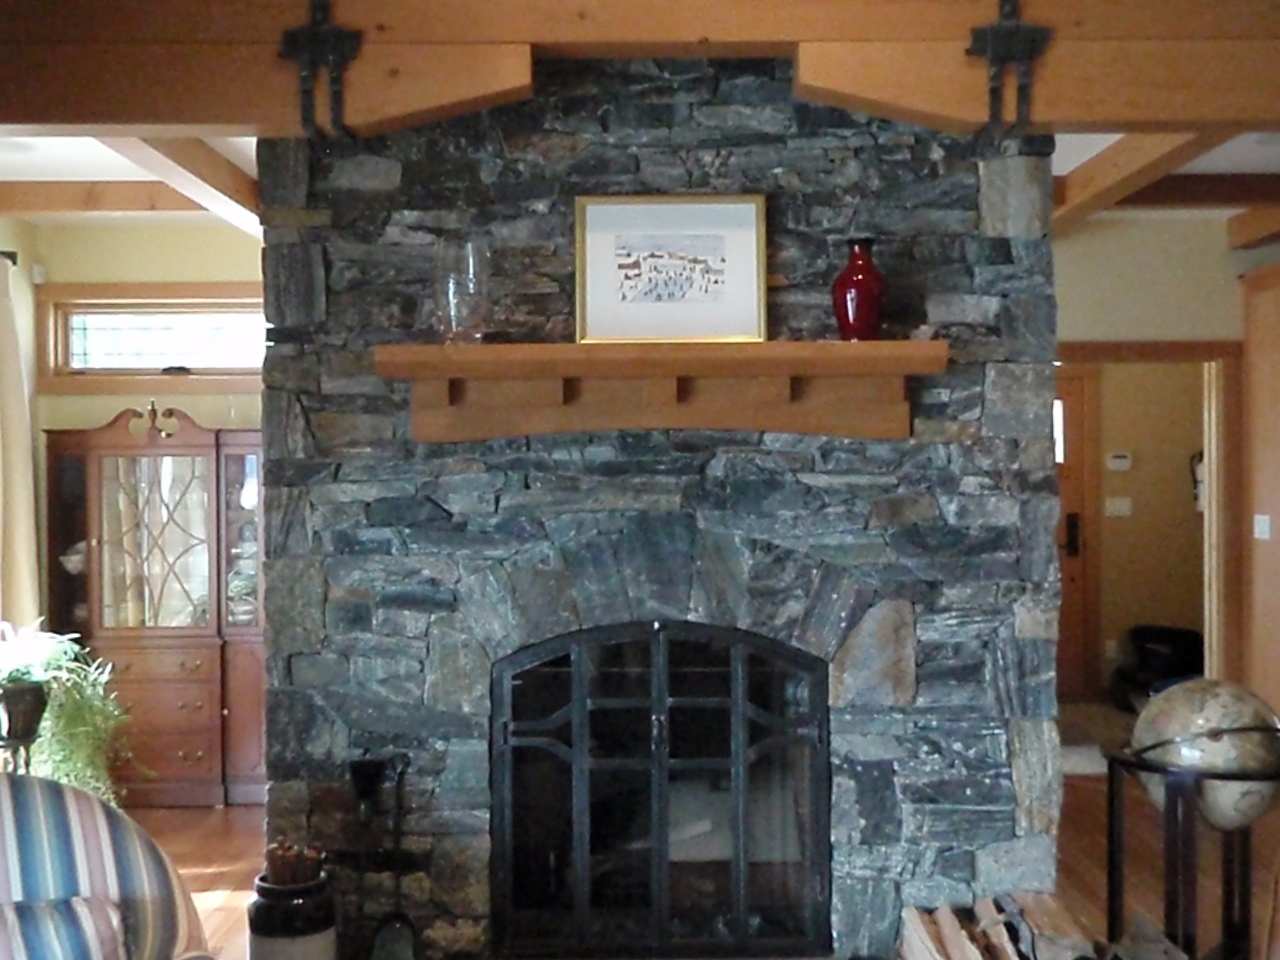 Rumford fireplace with natural stone mantel kit matched with wooden floor for heat warming room ideas